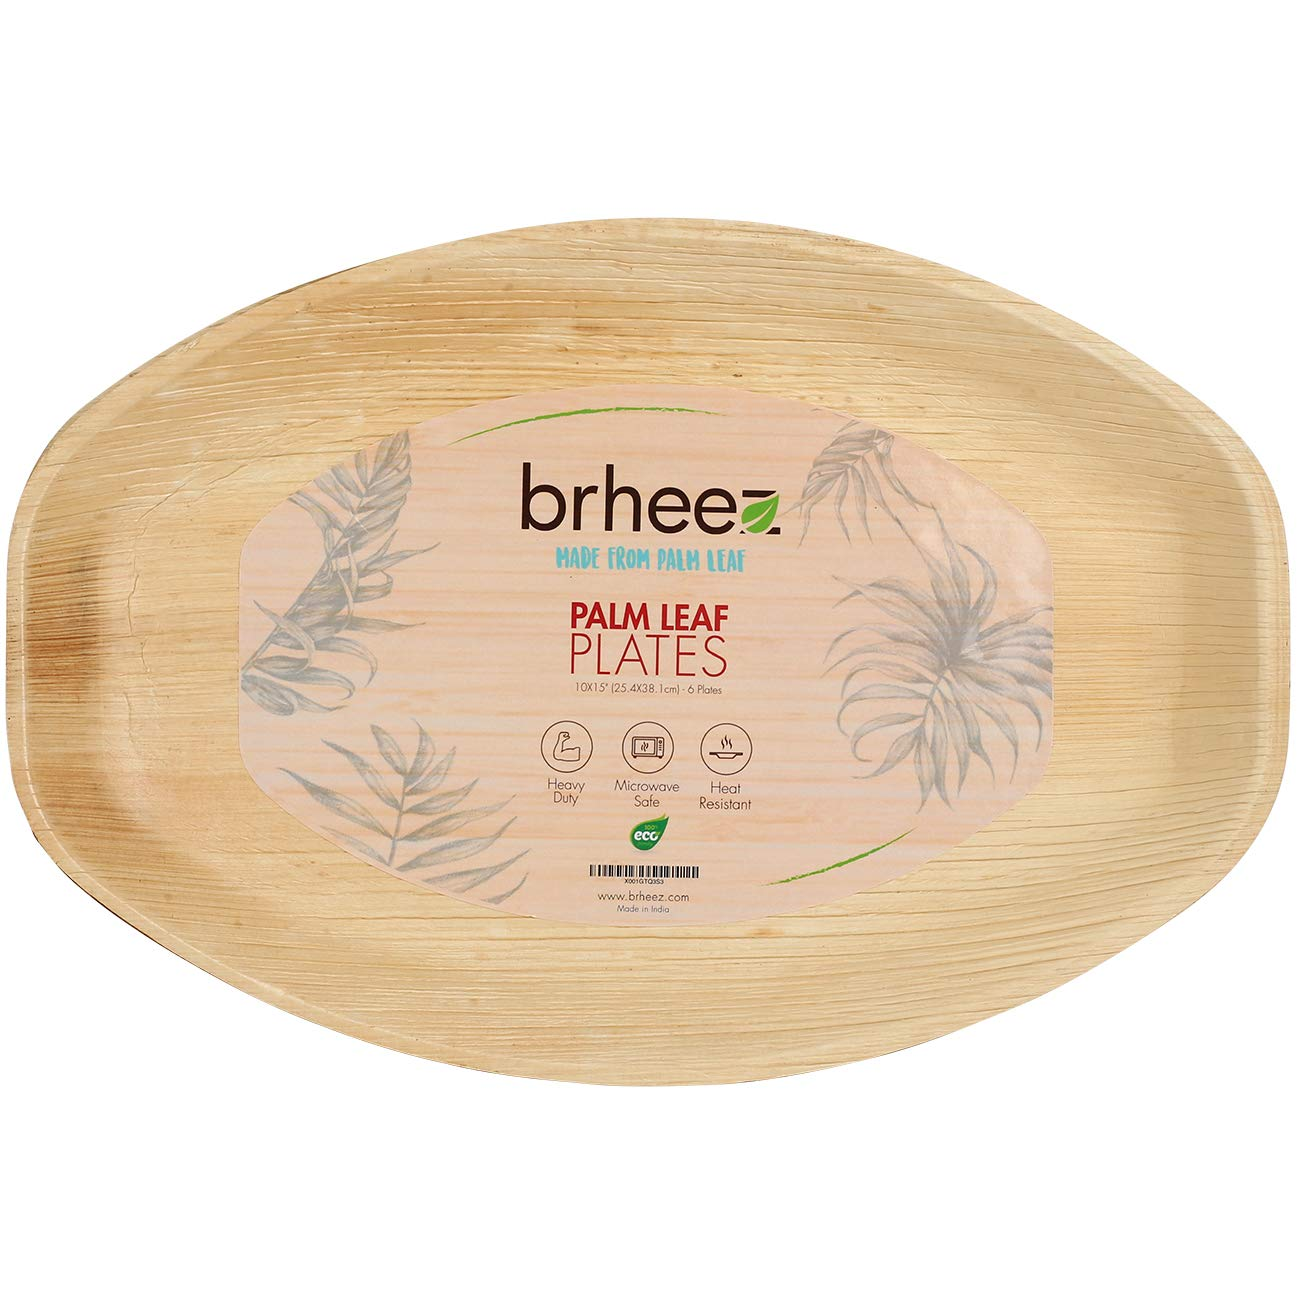 Brheez Palm Leaf Disposable Bamboo Like Oval 15 x 10 Inch -Natural Color - Elegant Sturdy SERVING PLATTER Biodegradable, Compostable Chemical Free, Natural Alternative To Plastic And Paper - Pack of 6